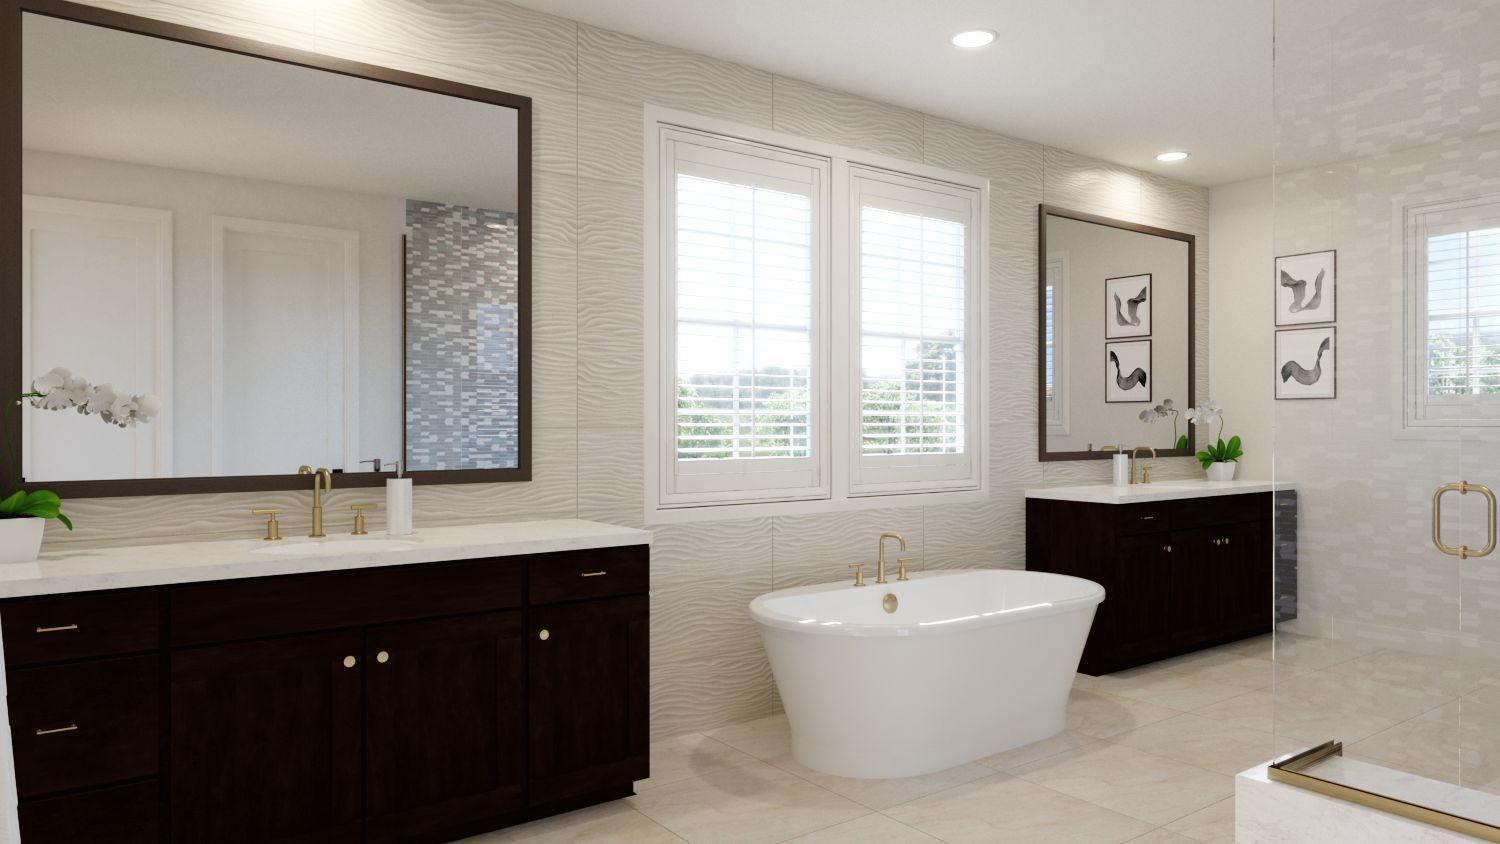 Bathroom featured in the Dover Residence 3 By Trumark Homes in Oakland-Alameda, CA